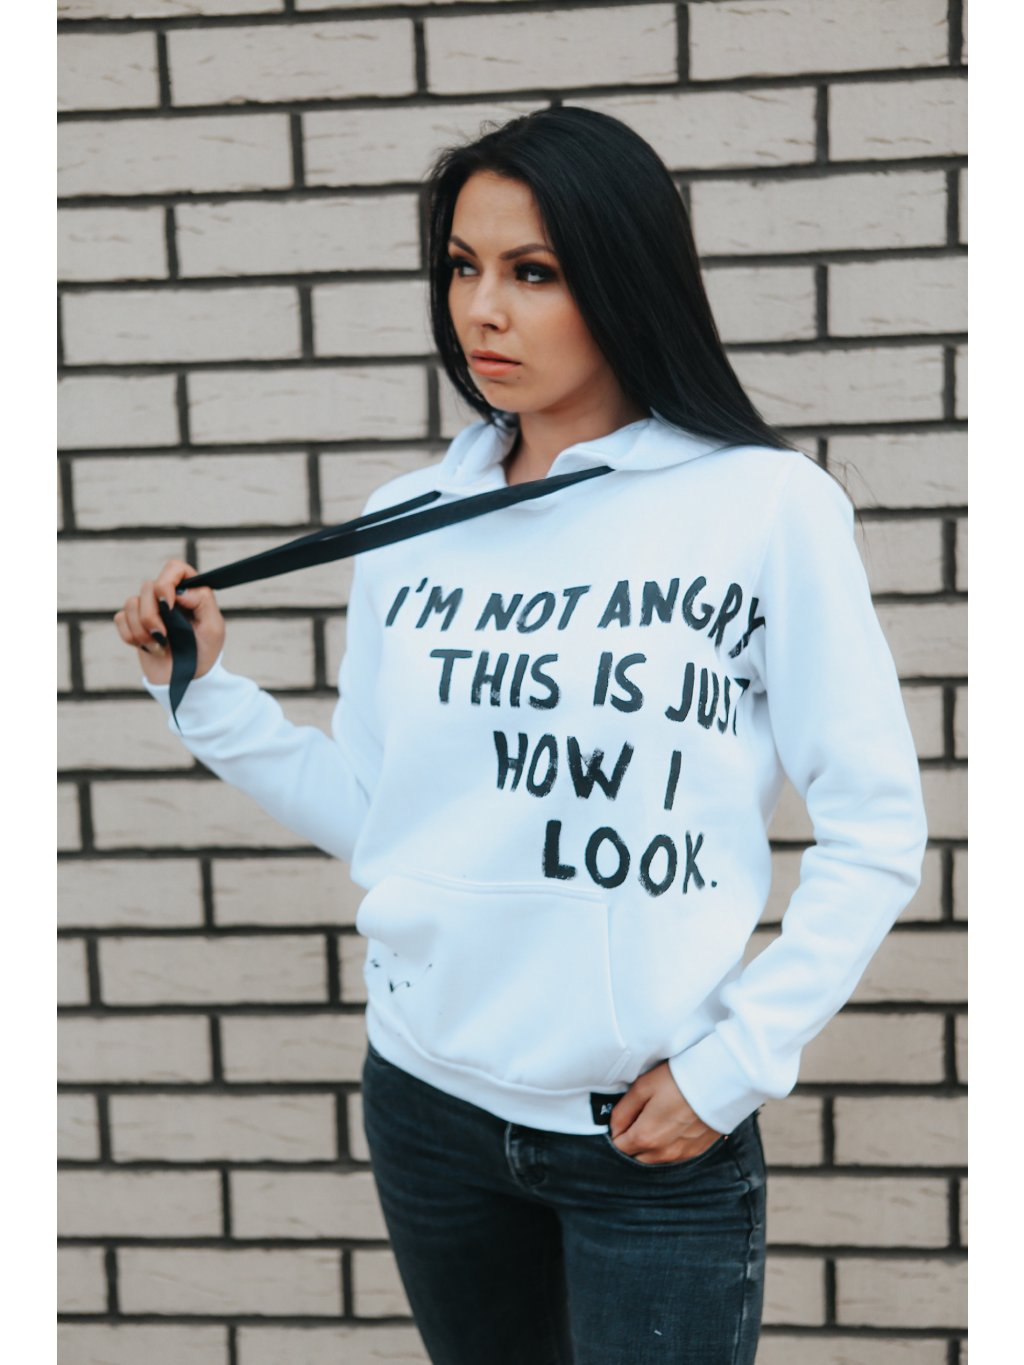 Not angry